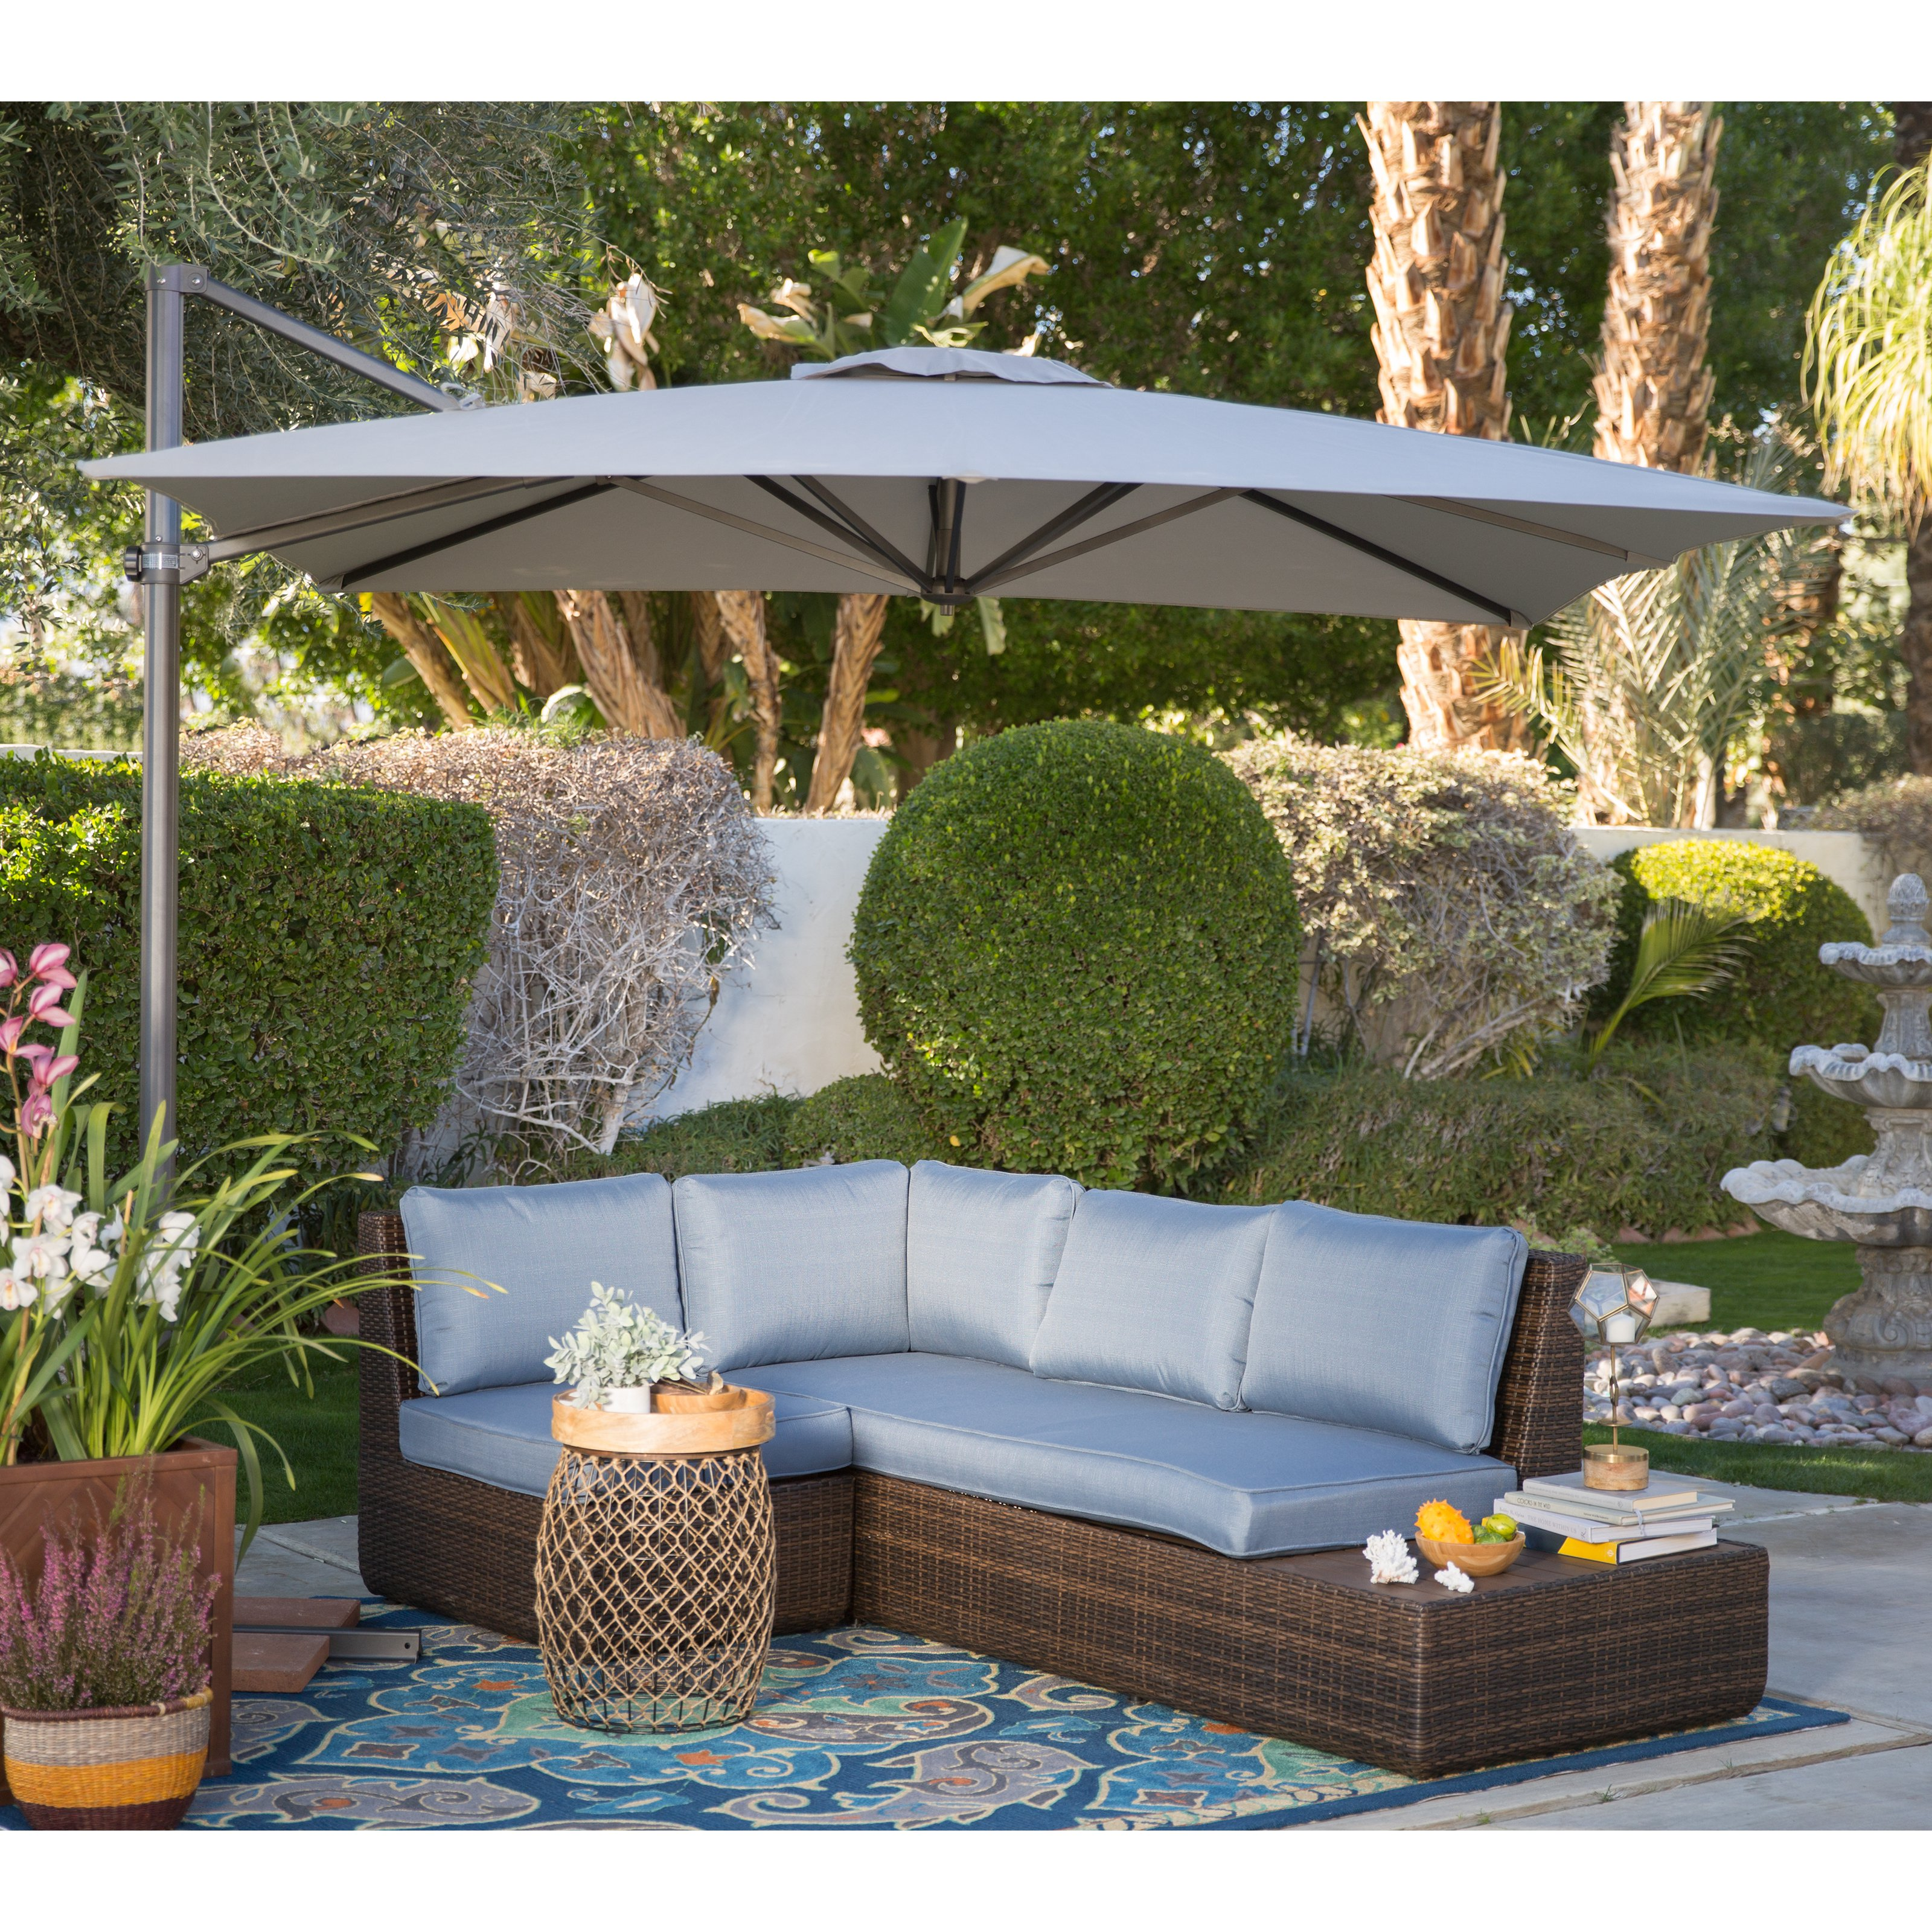 Garden Design fset Patio Umbrella With Base